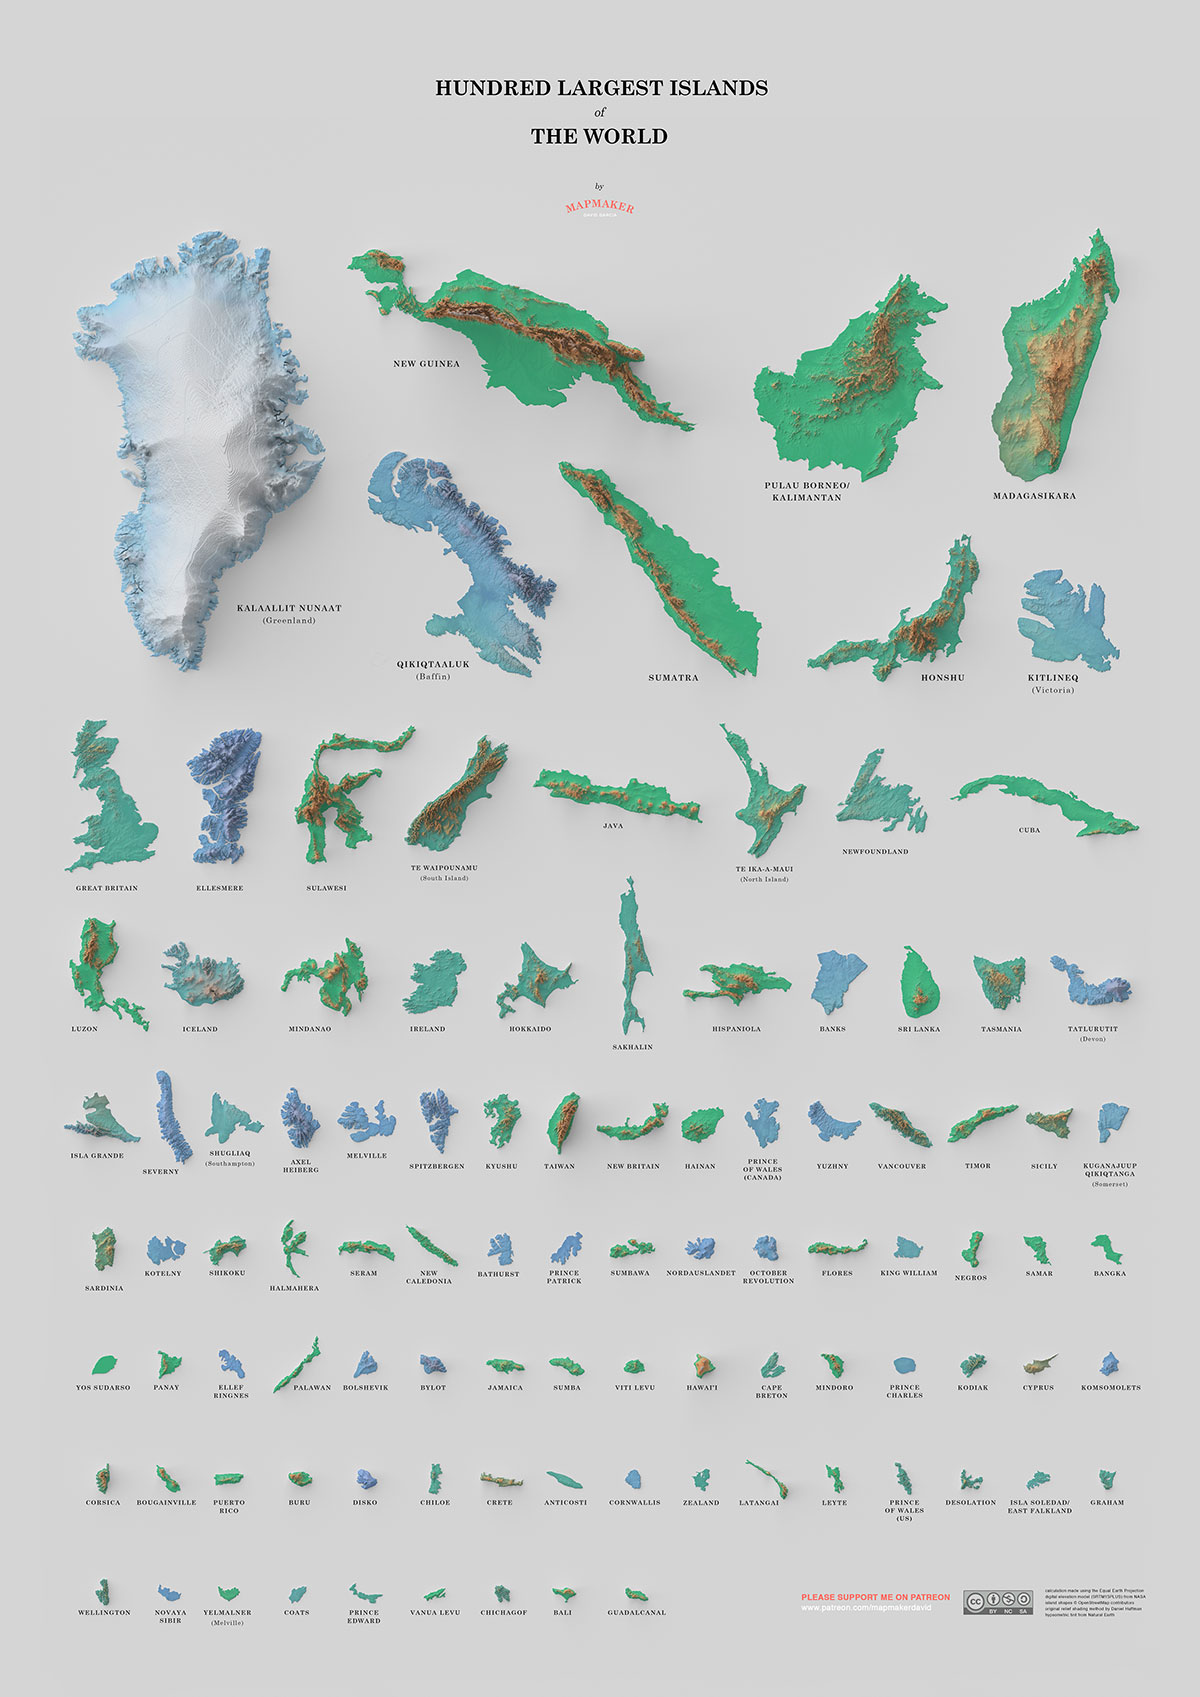 100 largest islands of the world poster A Fascinating Poster of the 100 Largest Islands in the World